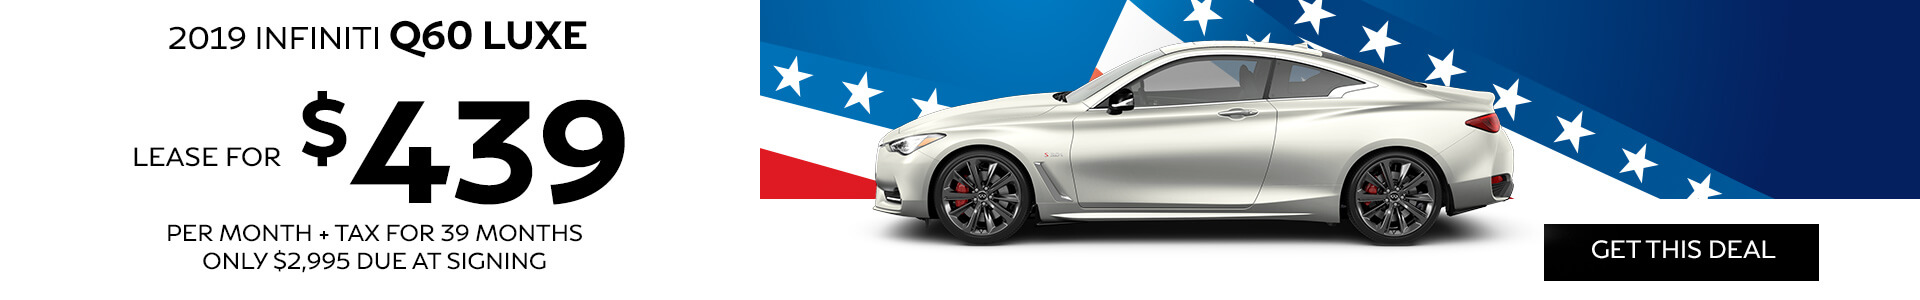 Q60 LUXE - Lease for $439